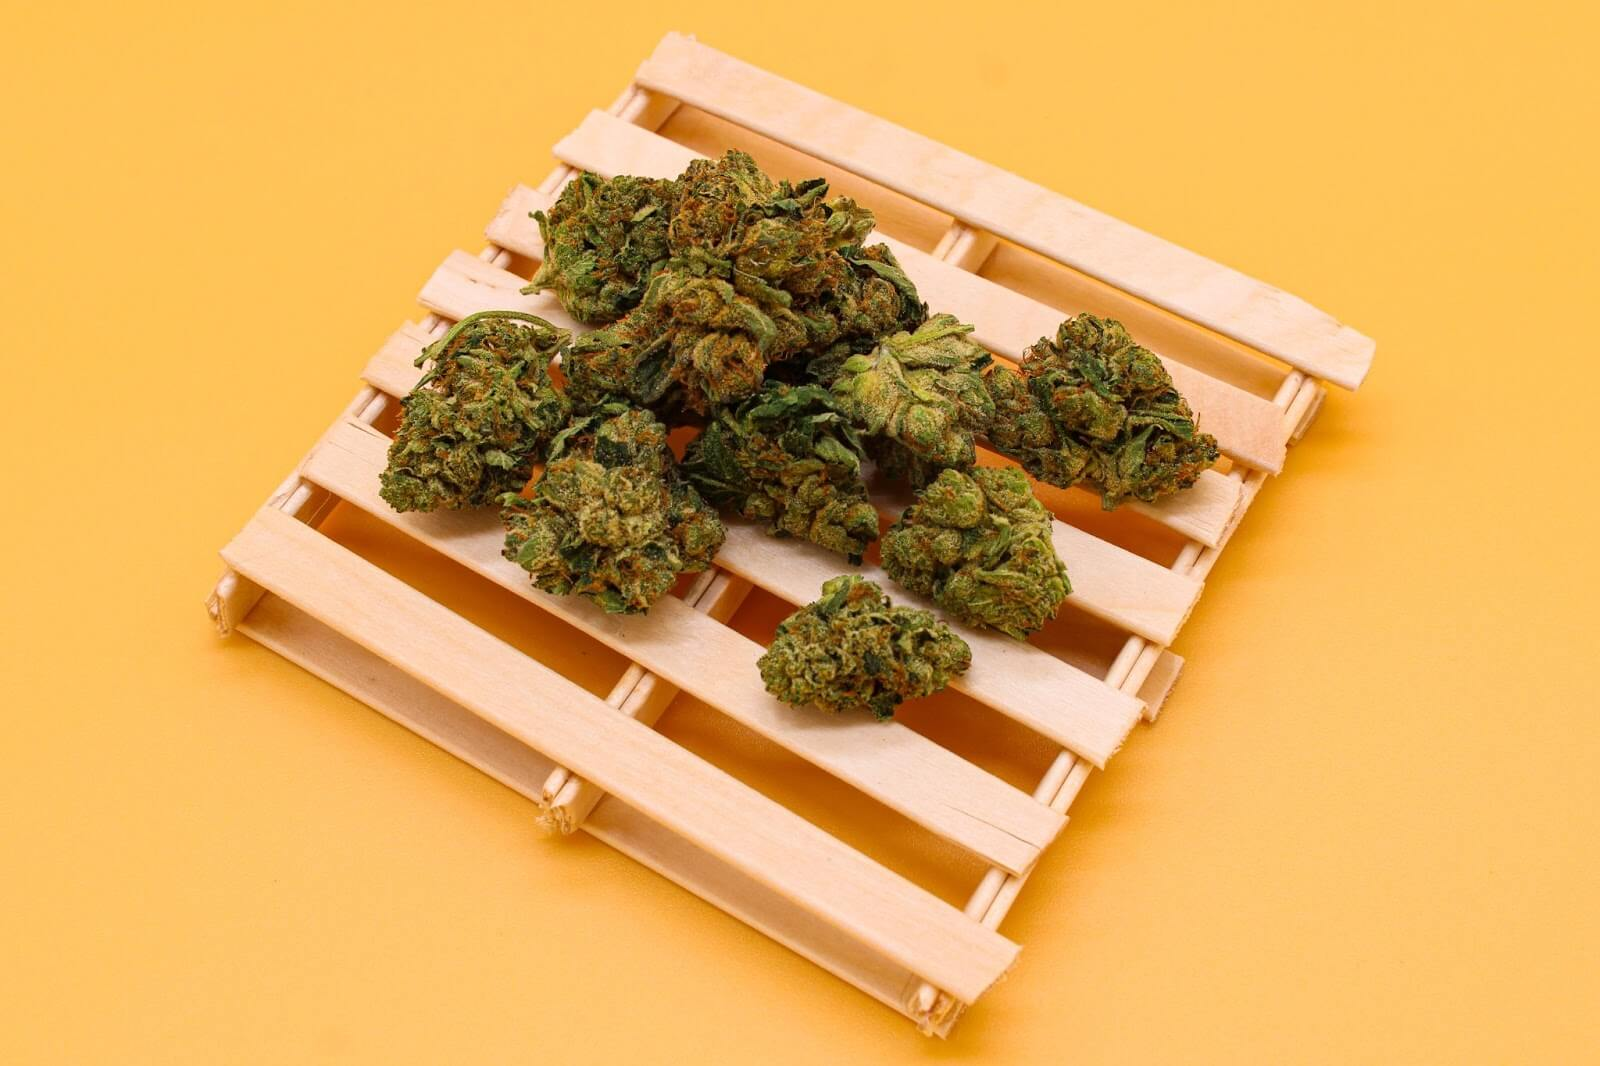 How to dry cannabis quickly